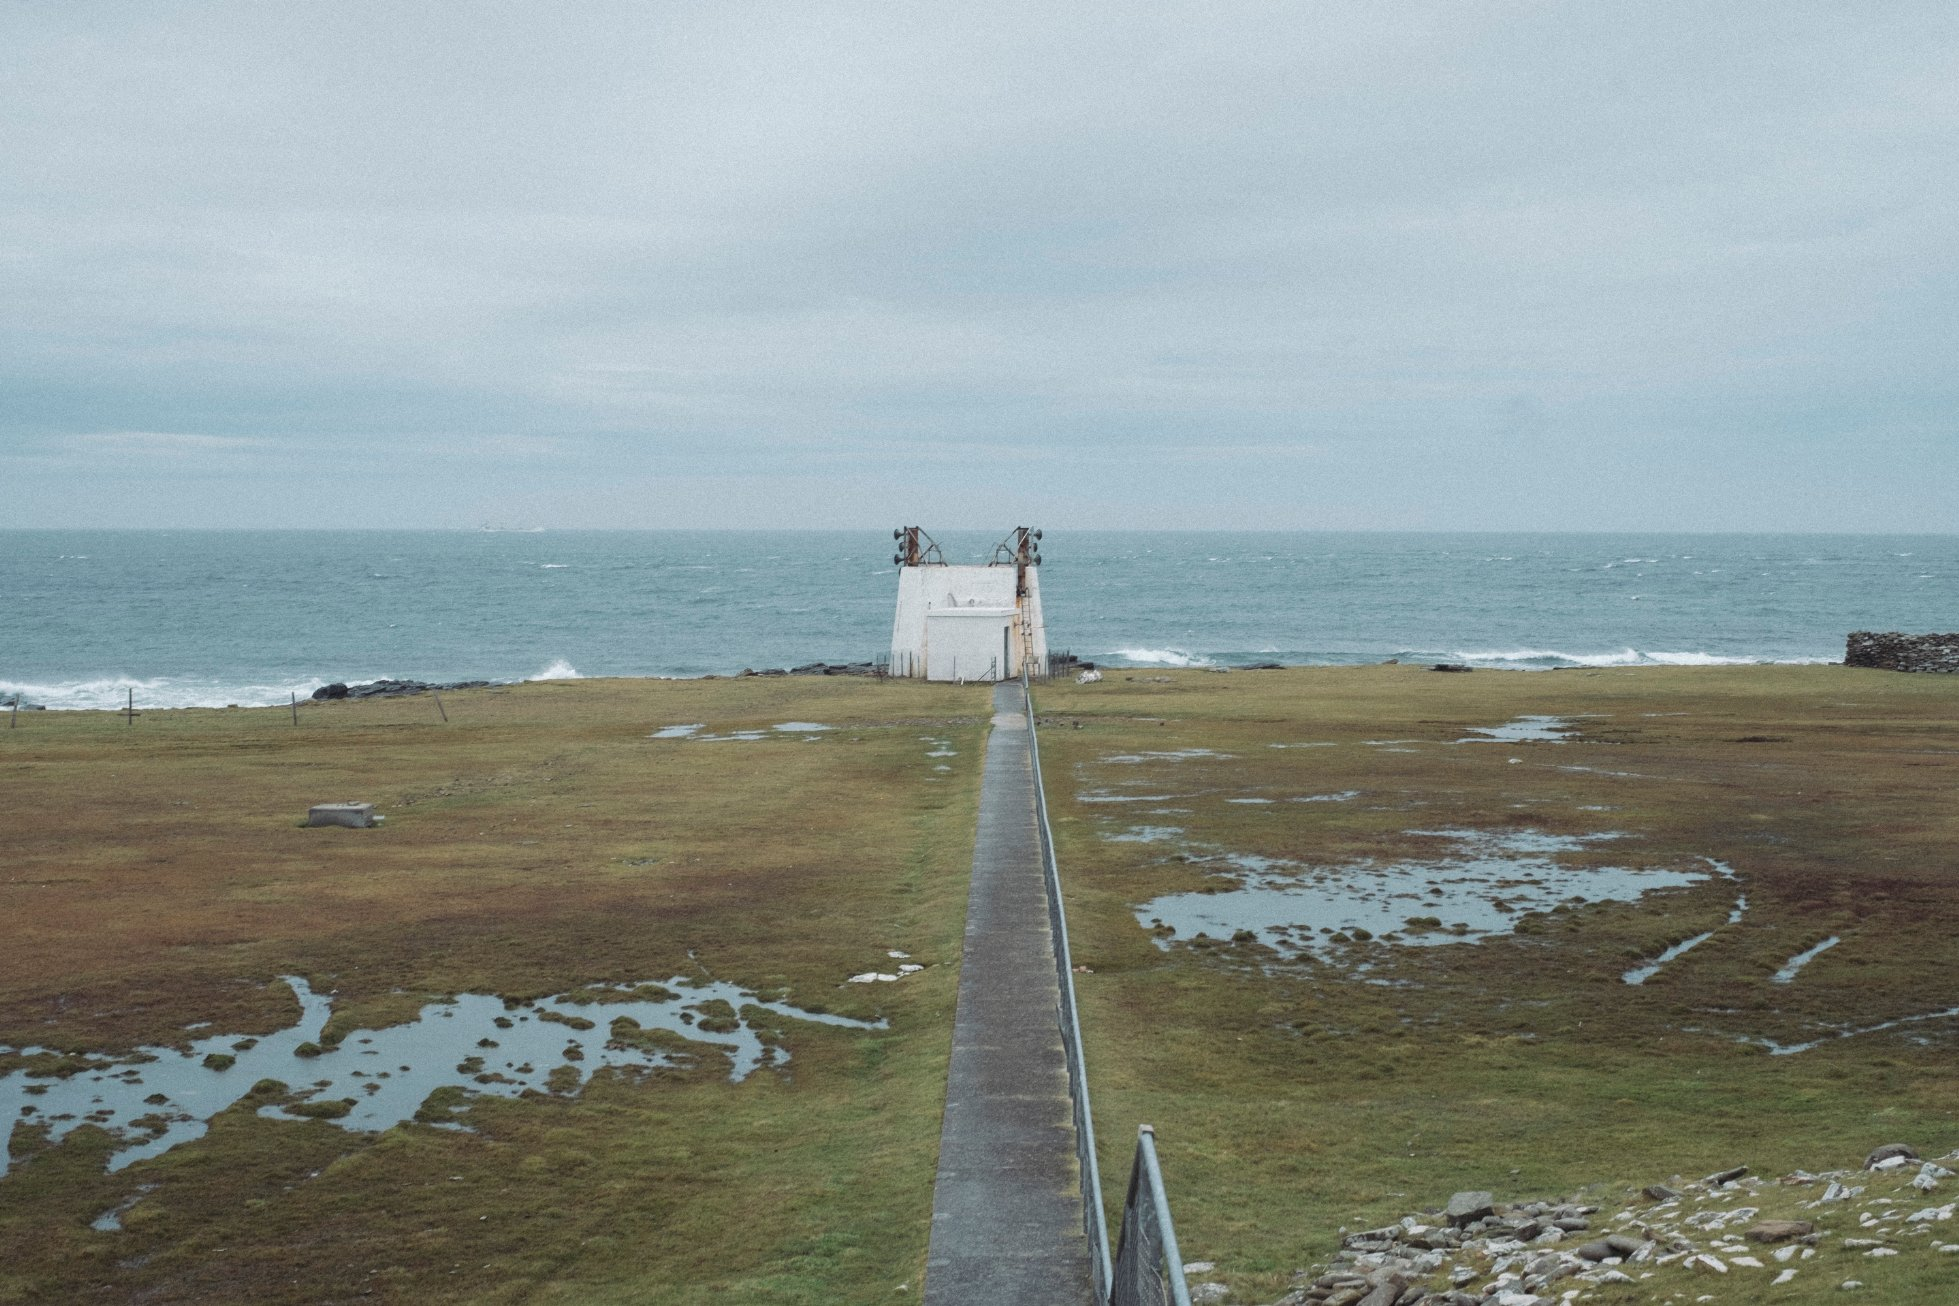 Fog horn in North Ronaldsay - image by Tomas Hermoso